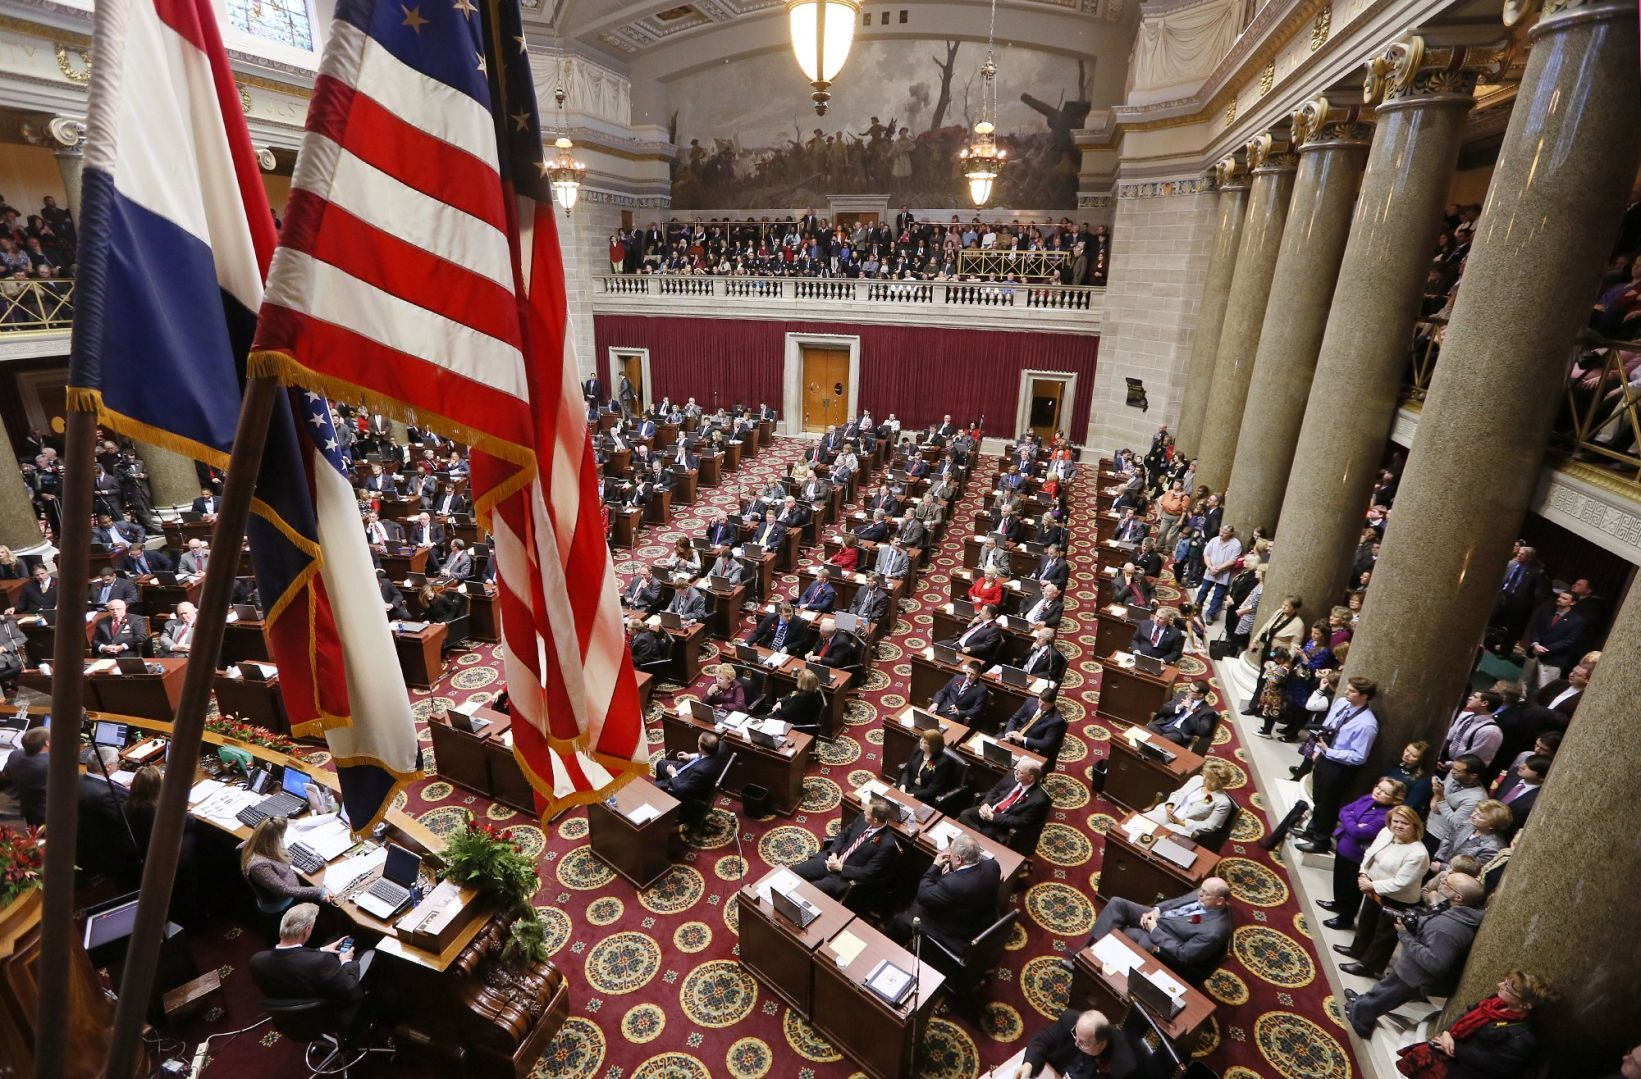 Missouri and U.S. flags adorn the Missouri House of Representatives on opening day 2015. St. Louis Post-Dispatch caption: